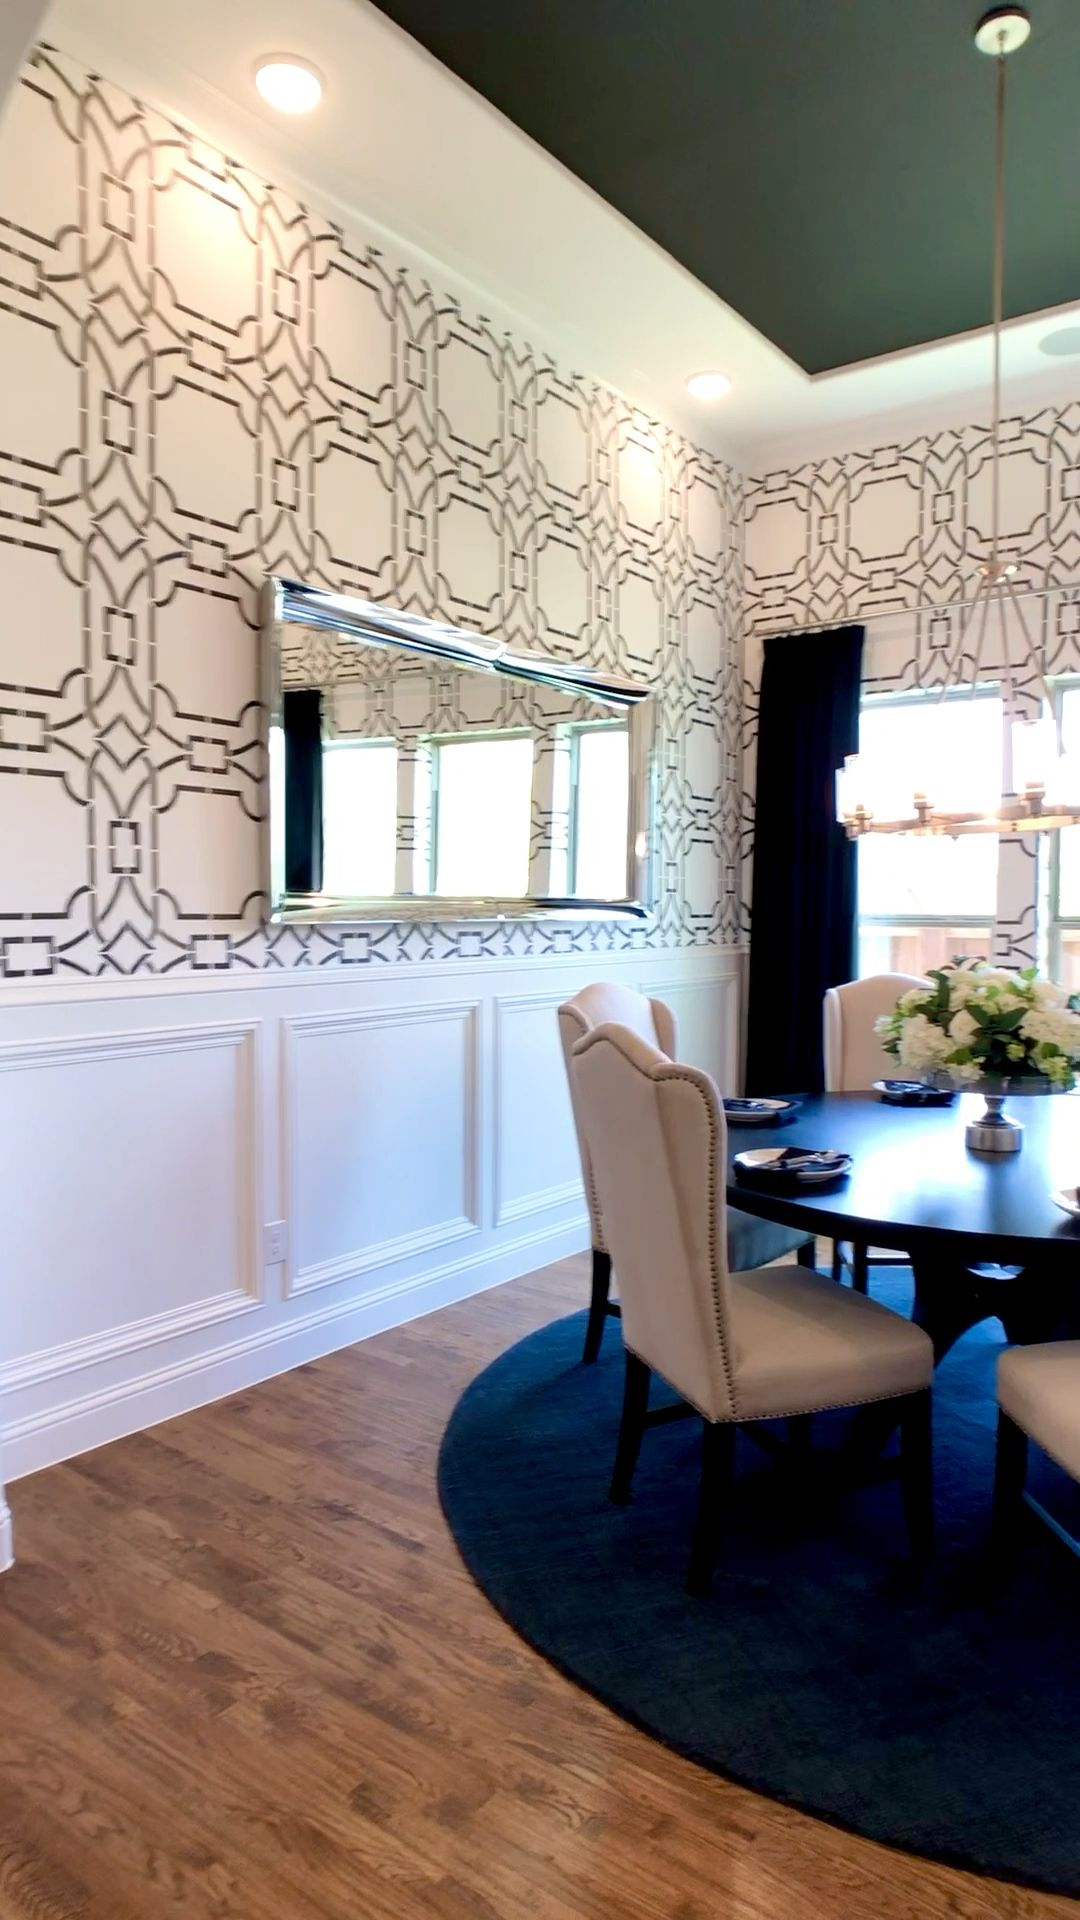 These black and white walls look like wallpaper, but the design was stenciled!  Beautiful wall molding, wood floors & dark ceiling complete this dining room decor.  Click to see more model home photos & get design inspiration...THE DECORATING COACH #decoratingideas #decoratingtips #diningroomideas #diningroomdecor